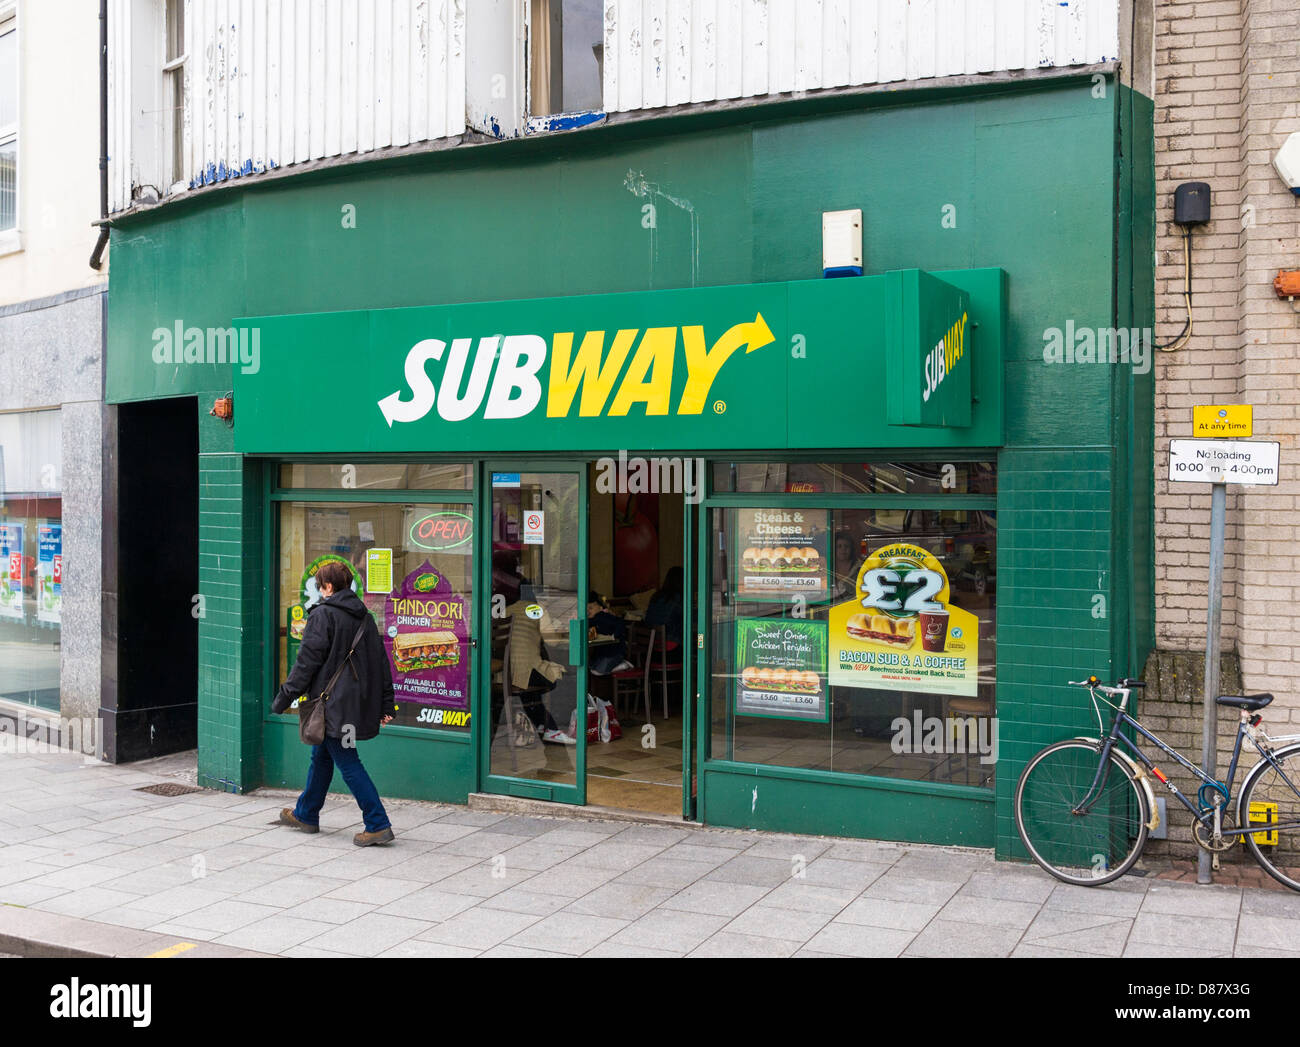 Subway sandwich shop, UK - Stock Image